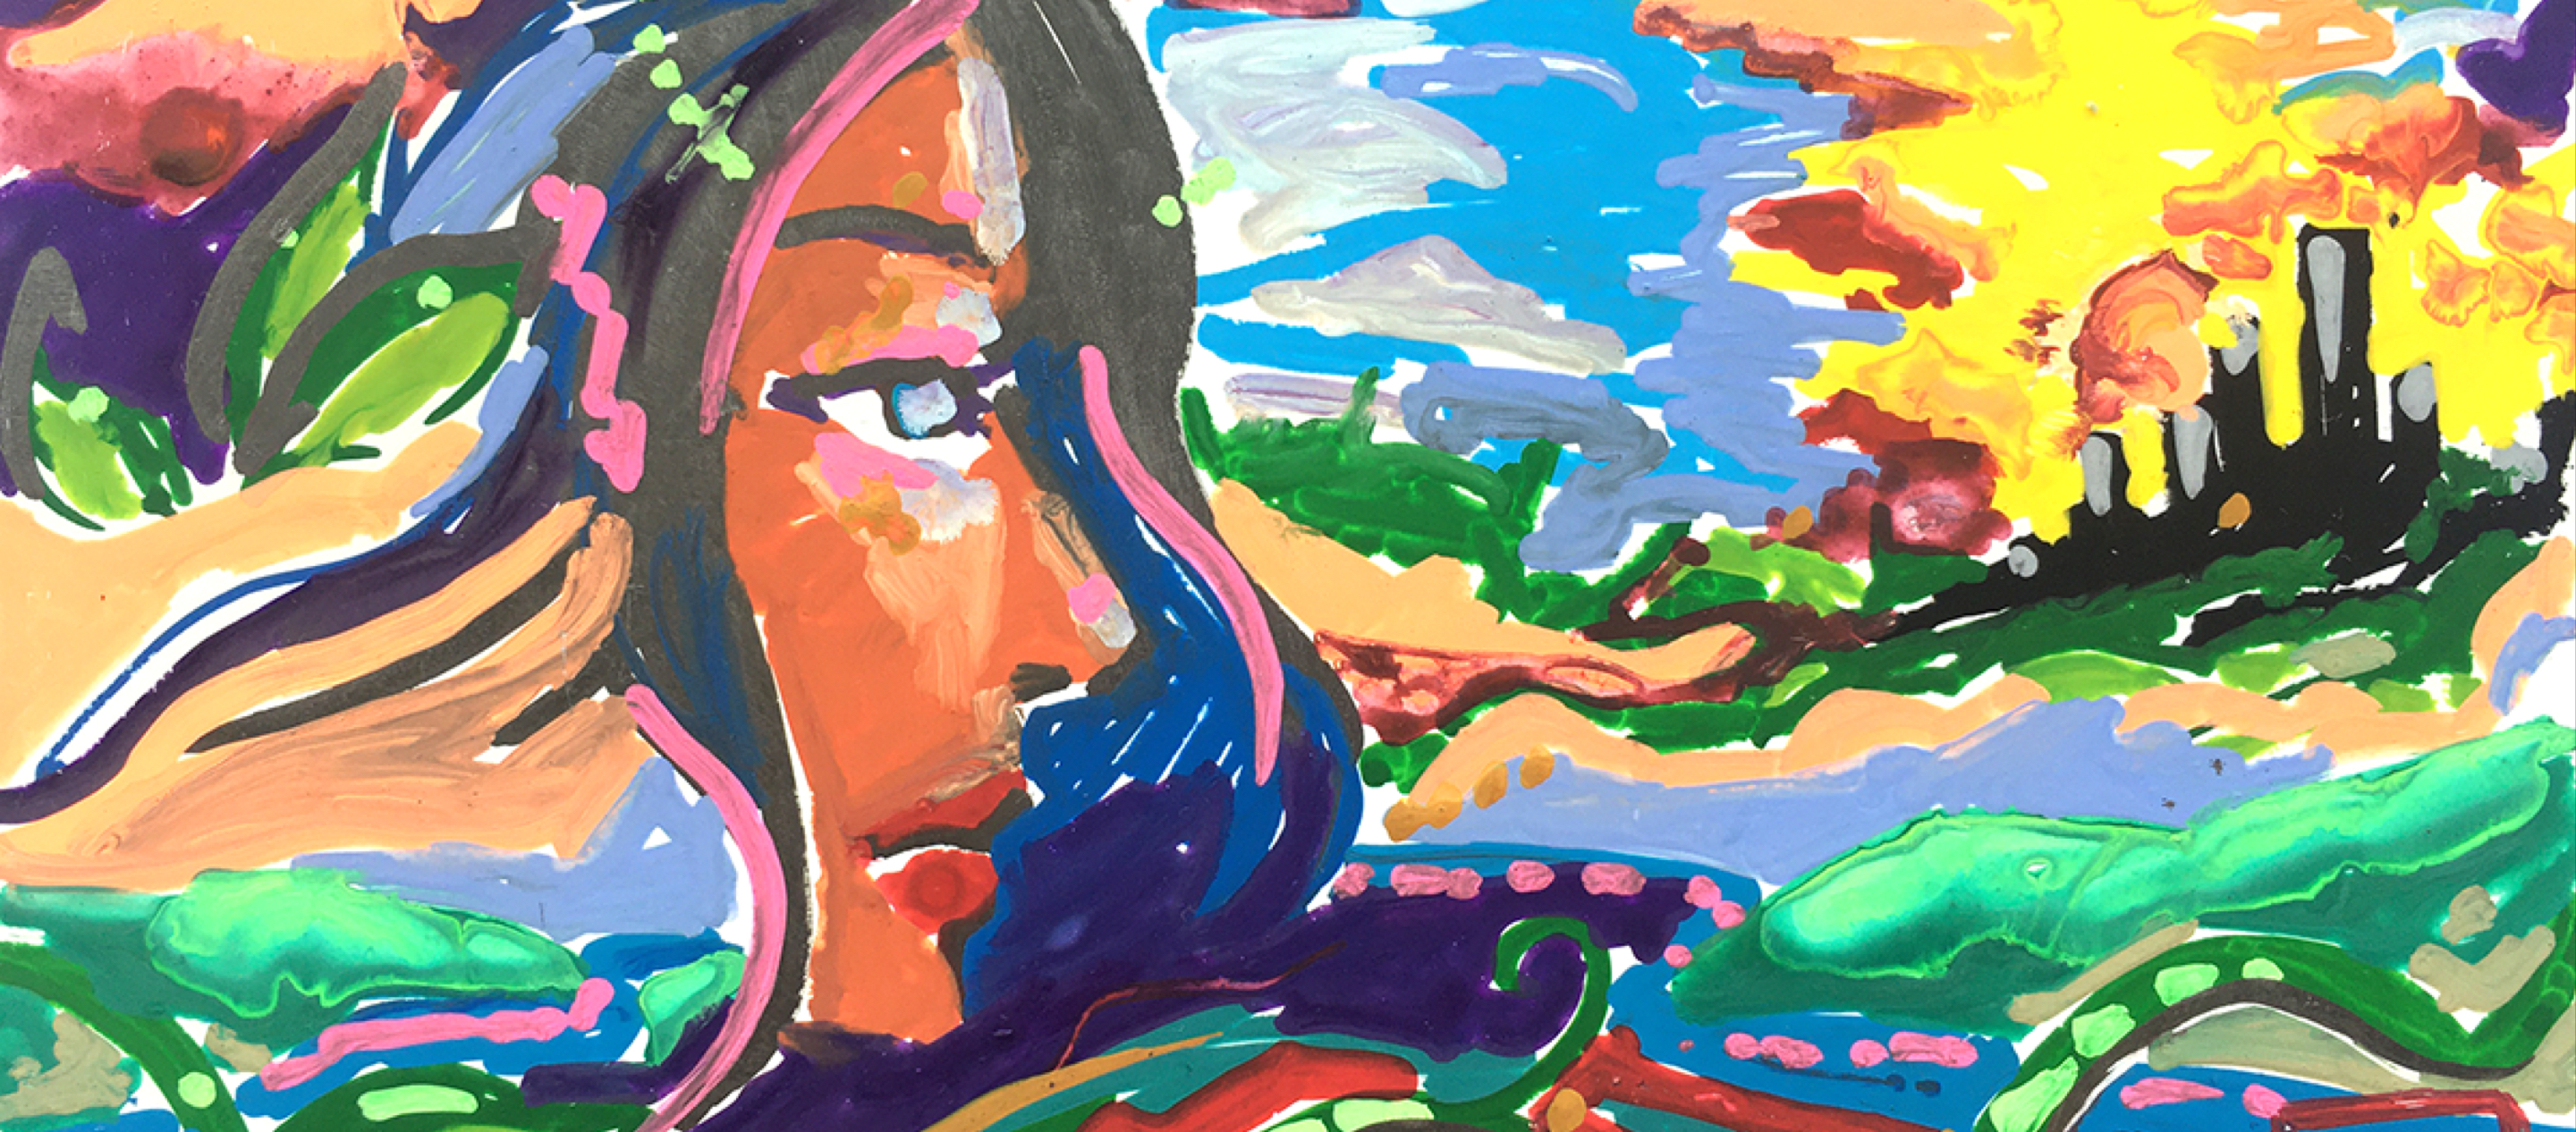 adobemax-woman-inventamazing-invent-amazing-colorful-eyes-markers-D